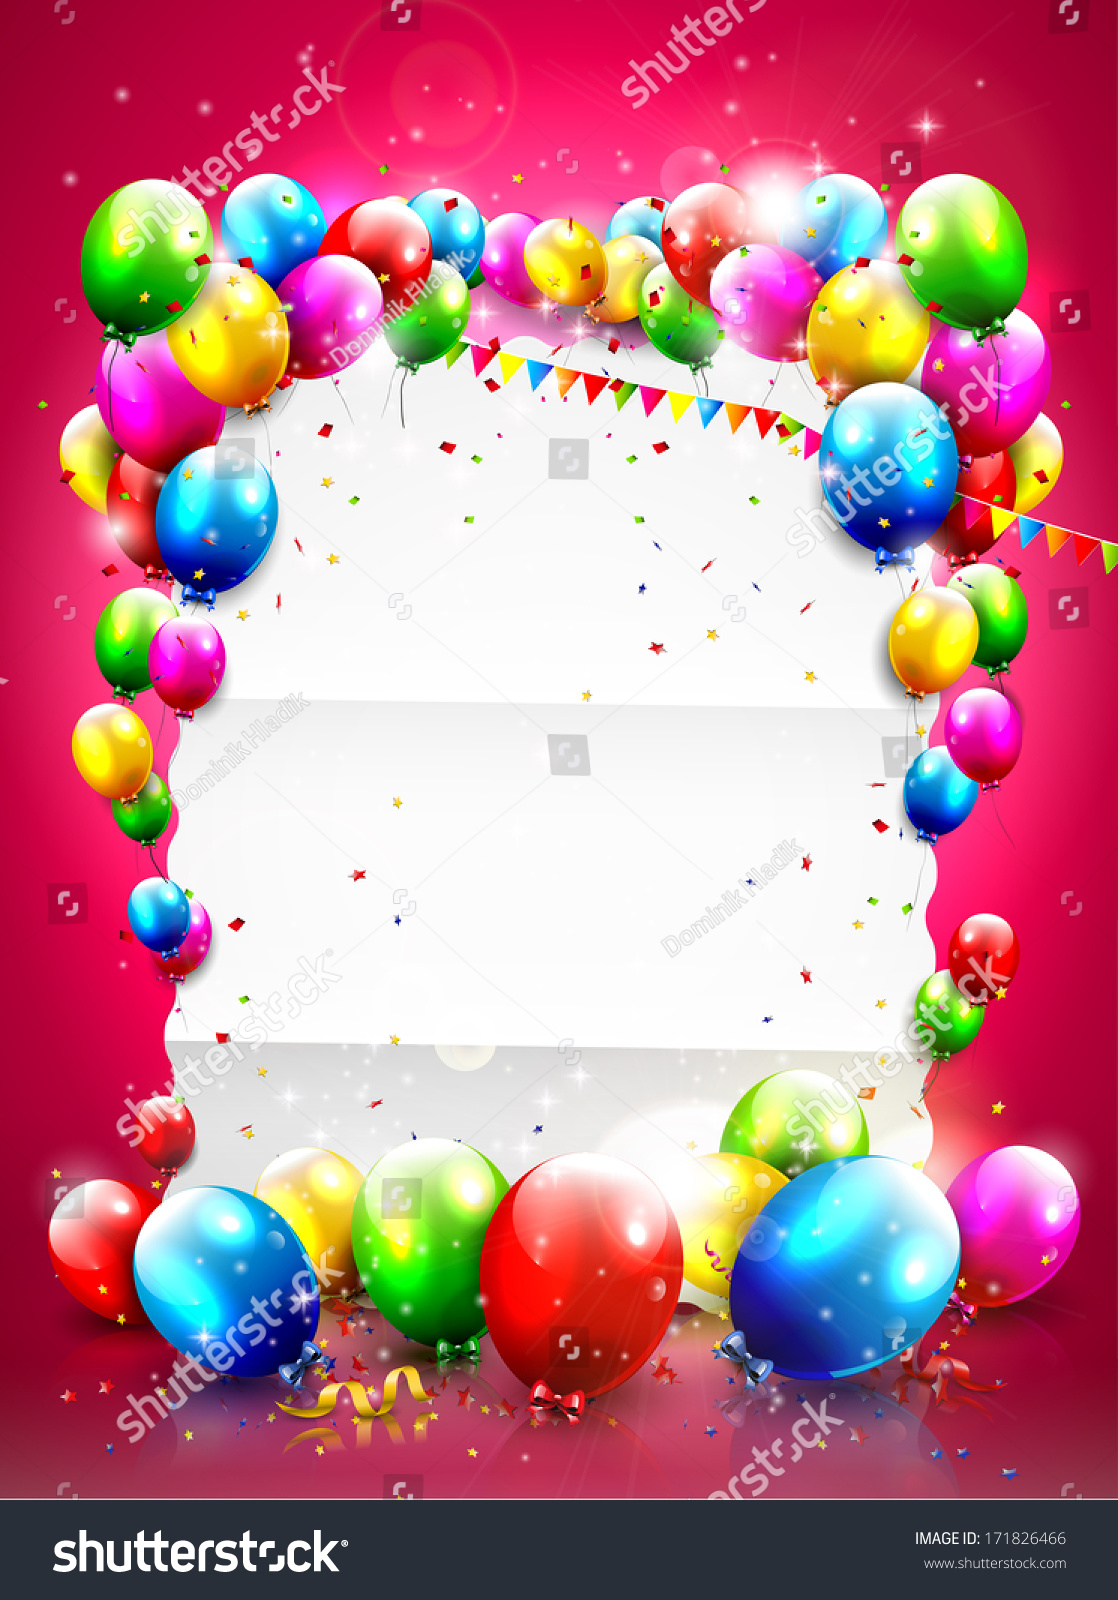 birthday template flying balloons empty paper stock vector birthday template flying balloons and empty paper on red background